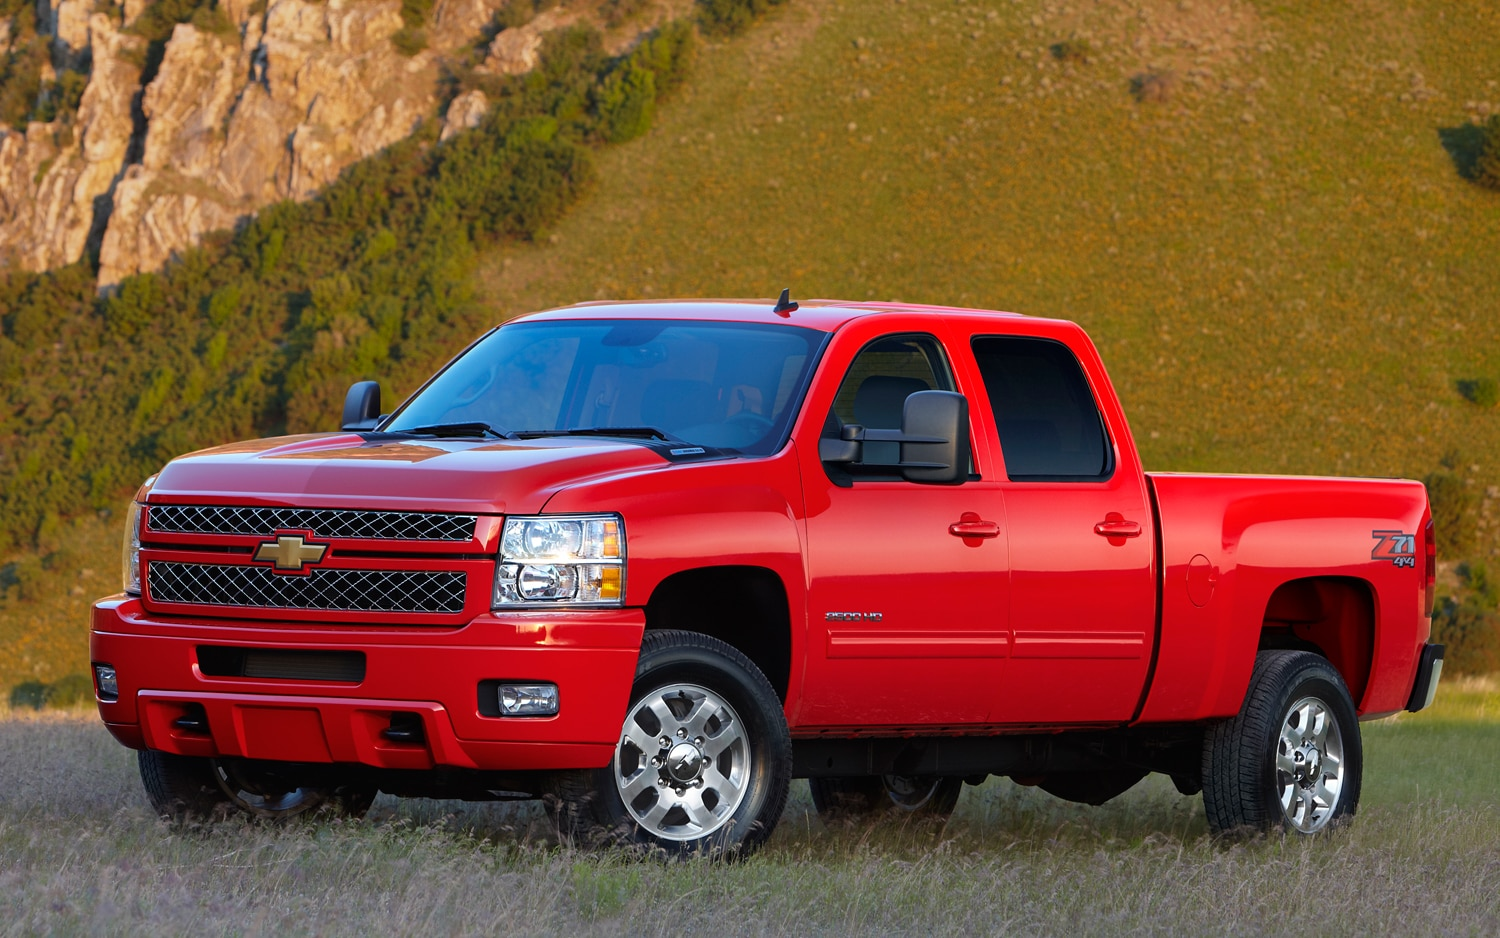 2013 Chevrolet Silverado 2500 HD Front Three Quarters